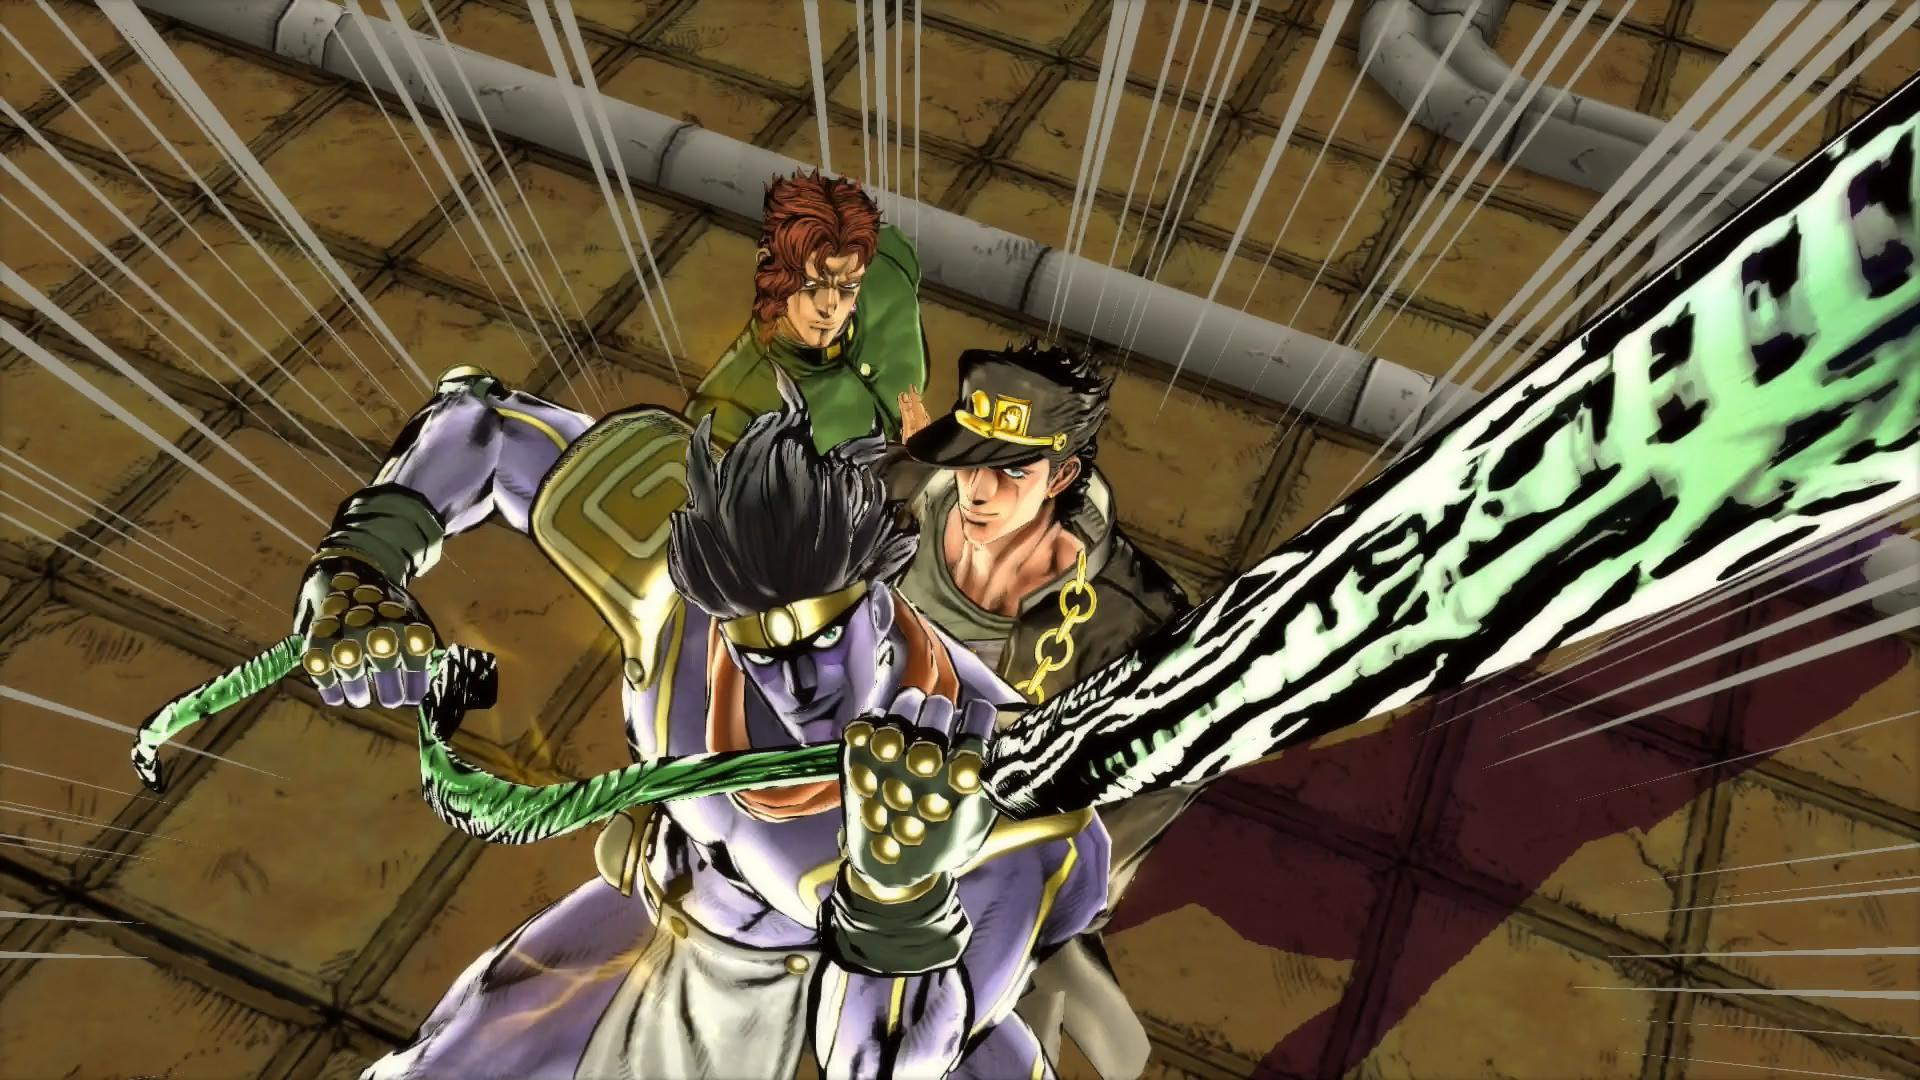 JoJo's Bizarre Adventure: Eyes of Heaven #18